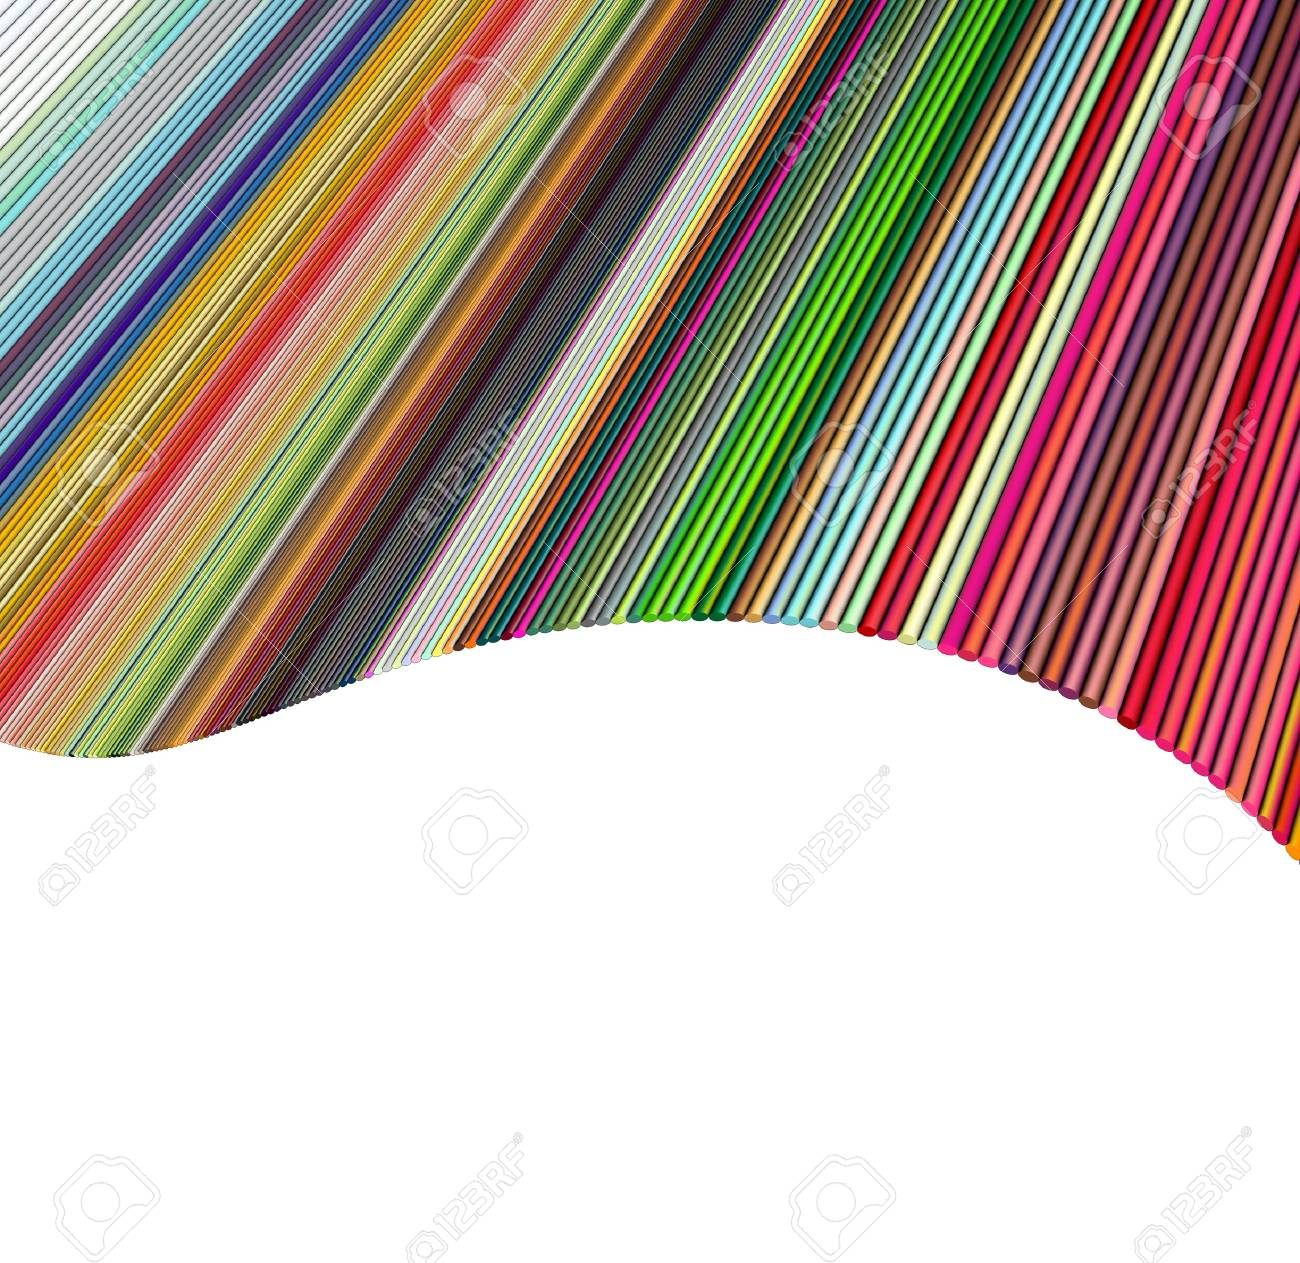 tube abstract wave 3d backdrop in multiple rainbow colors Stock Photo - 13045910